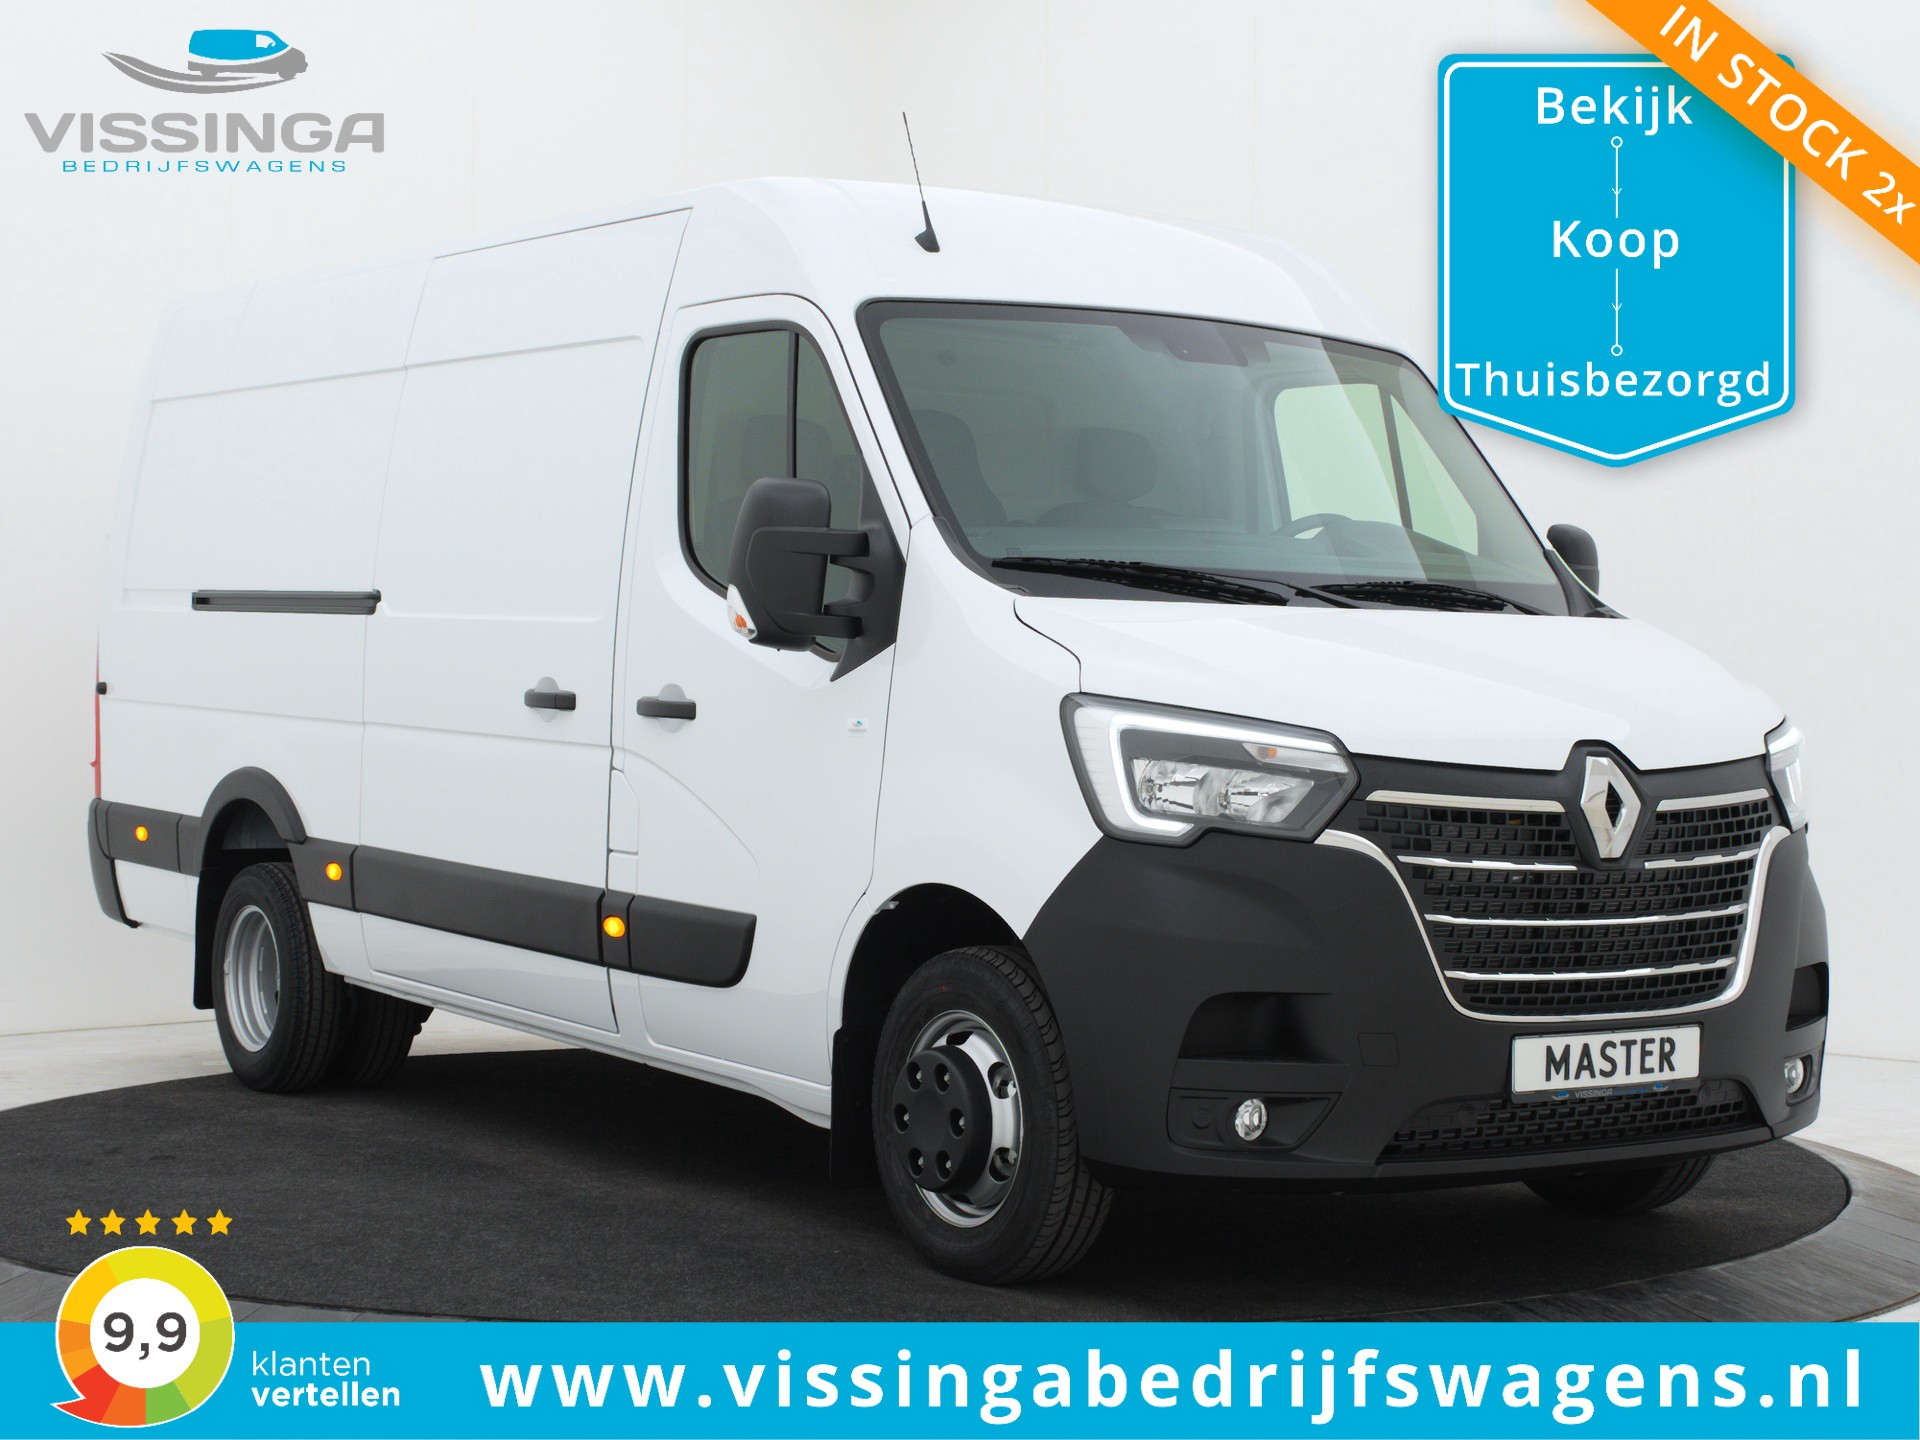 Renault Master T35 2.3 dCi L3H2 145 pk Twin-Turbo Energy